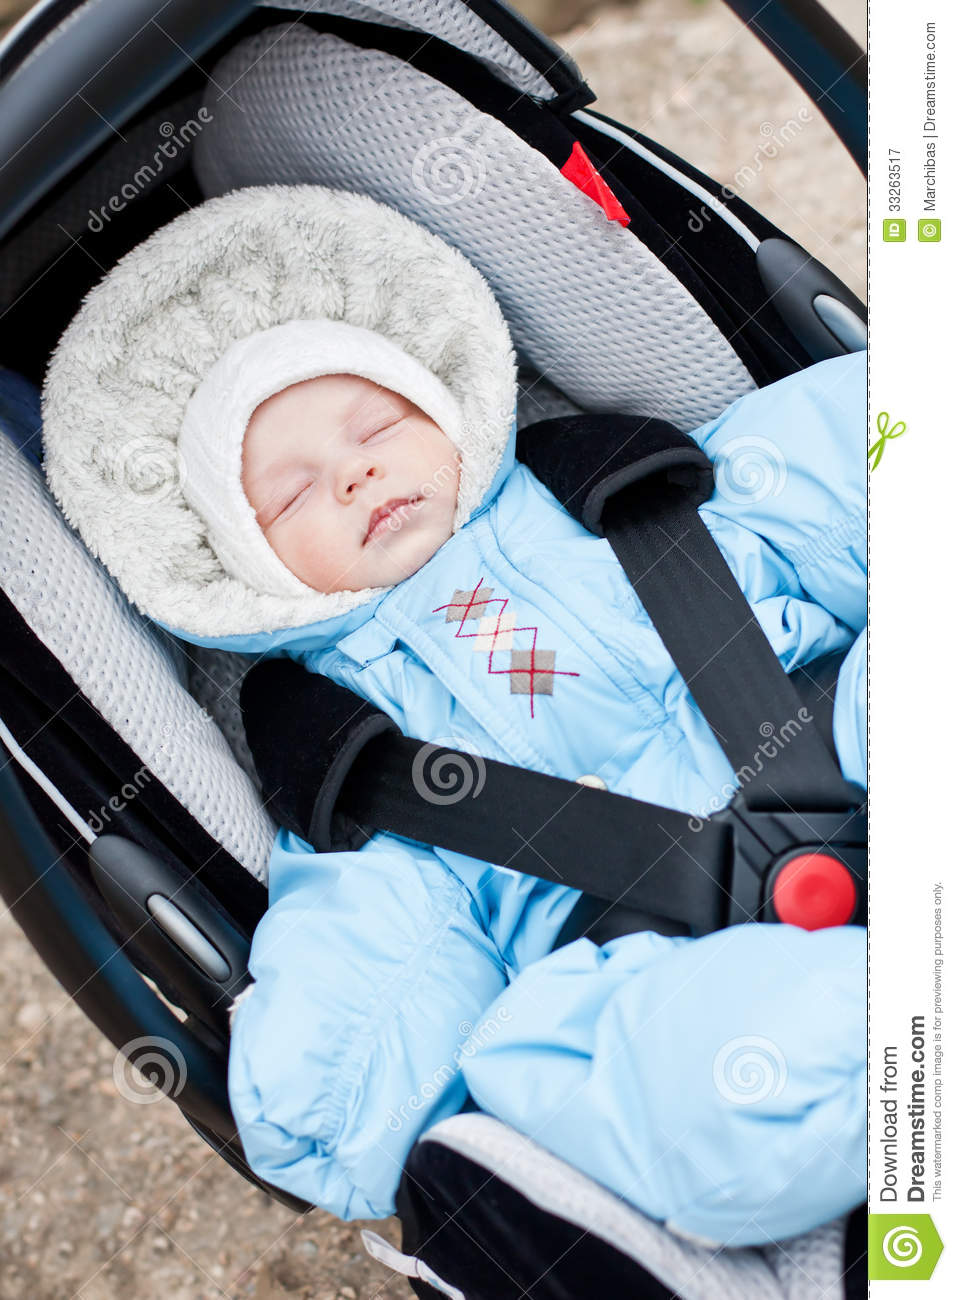 newborn sleeping in the car seat royalty free stock photography image 33263517. Black Bedroom Furniture Sets. Home Design Ideas